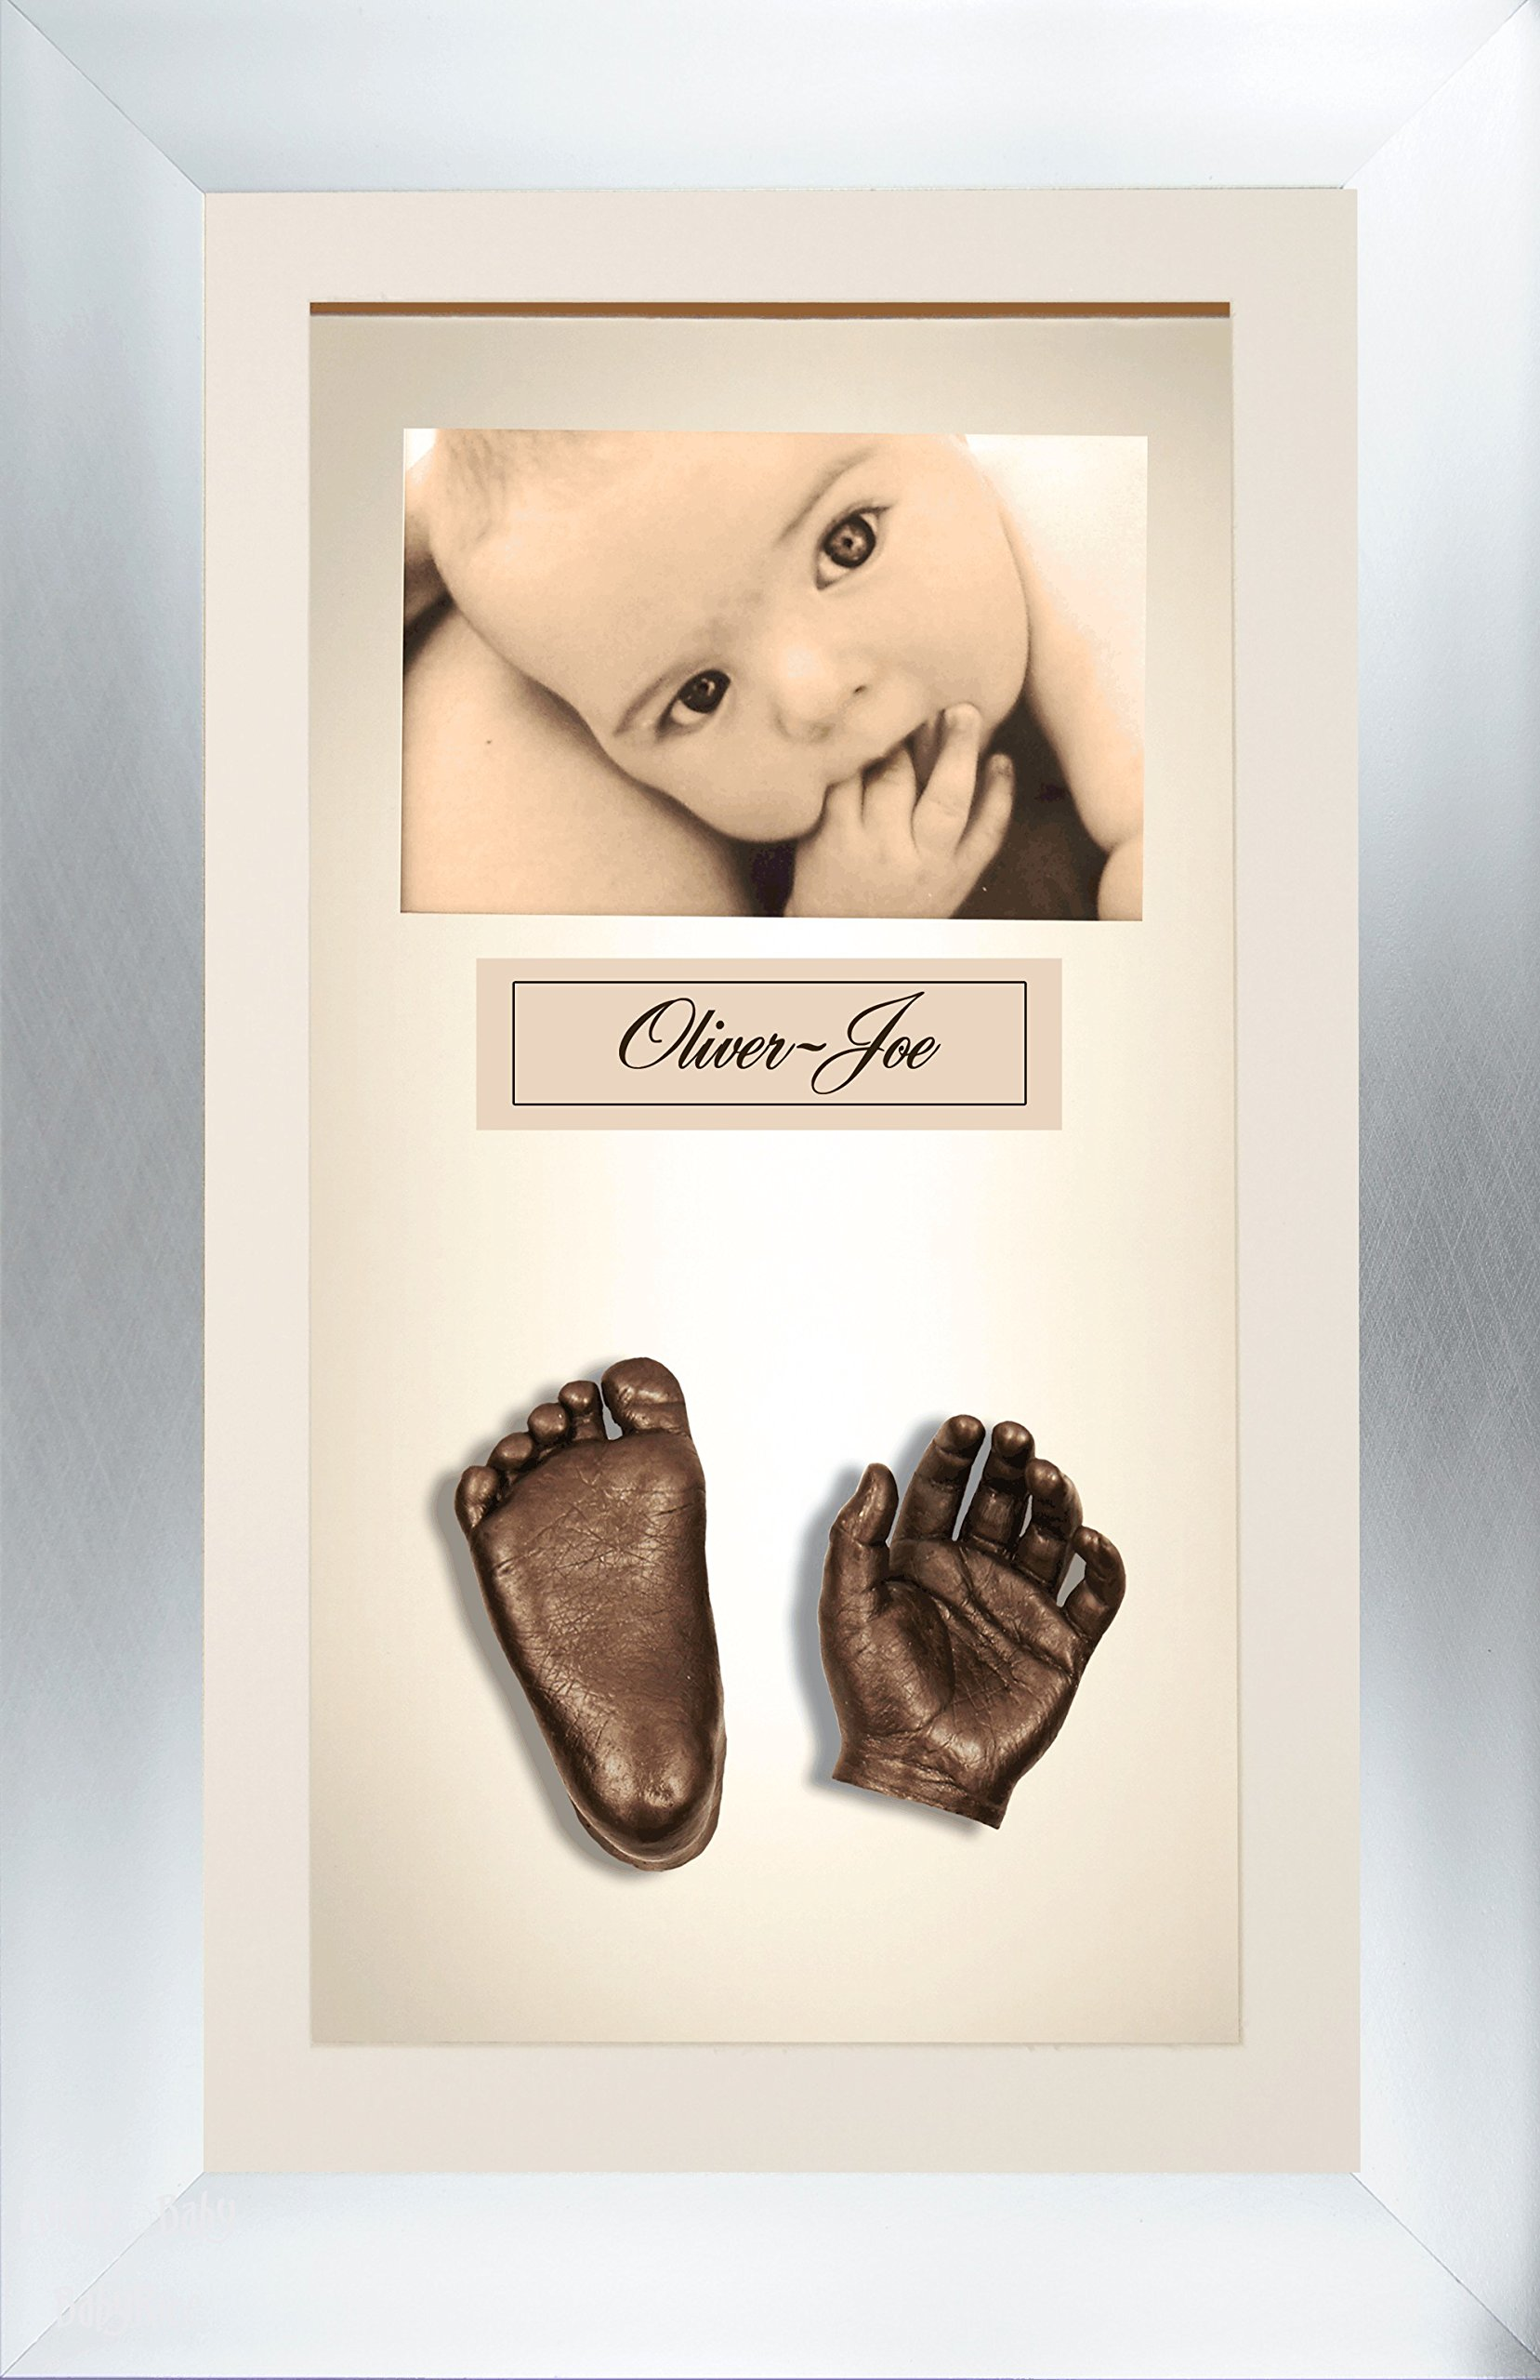 BabyRice 3D Baby Casting Kit Bronze Paint with Bronze Chrome Display Photo Frame by BabyRice